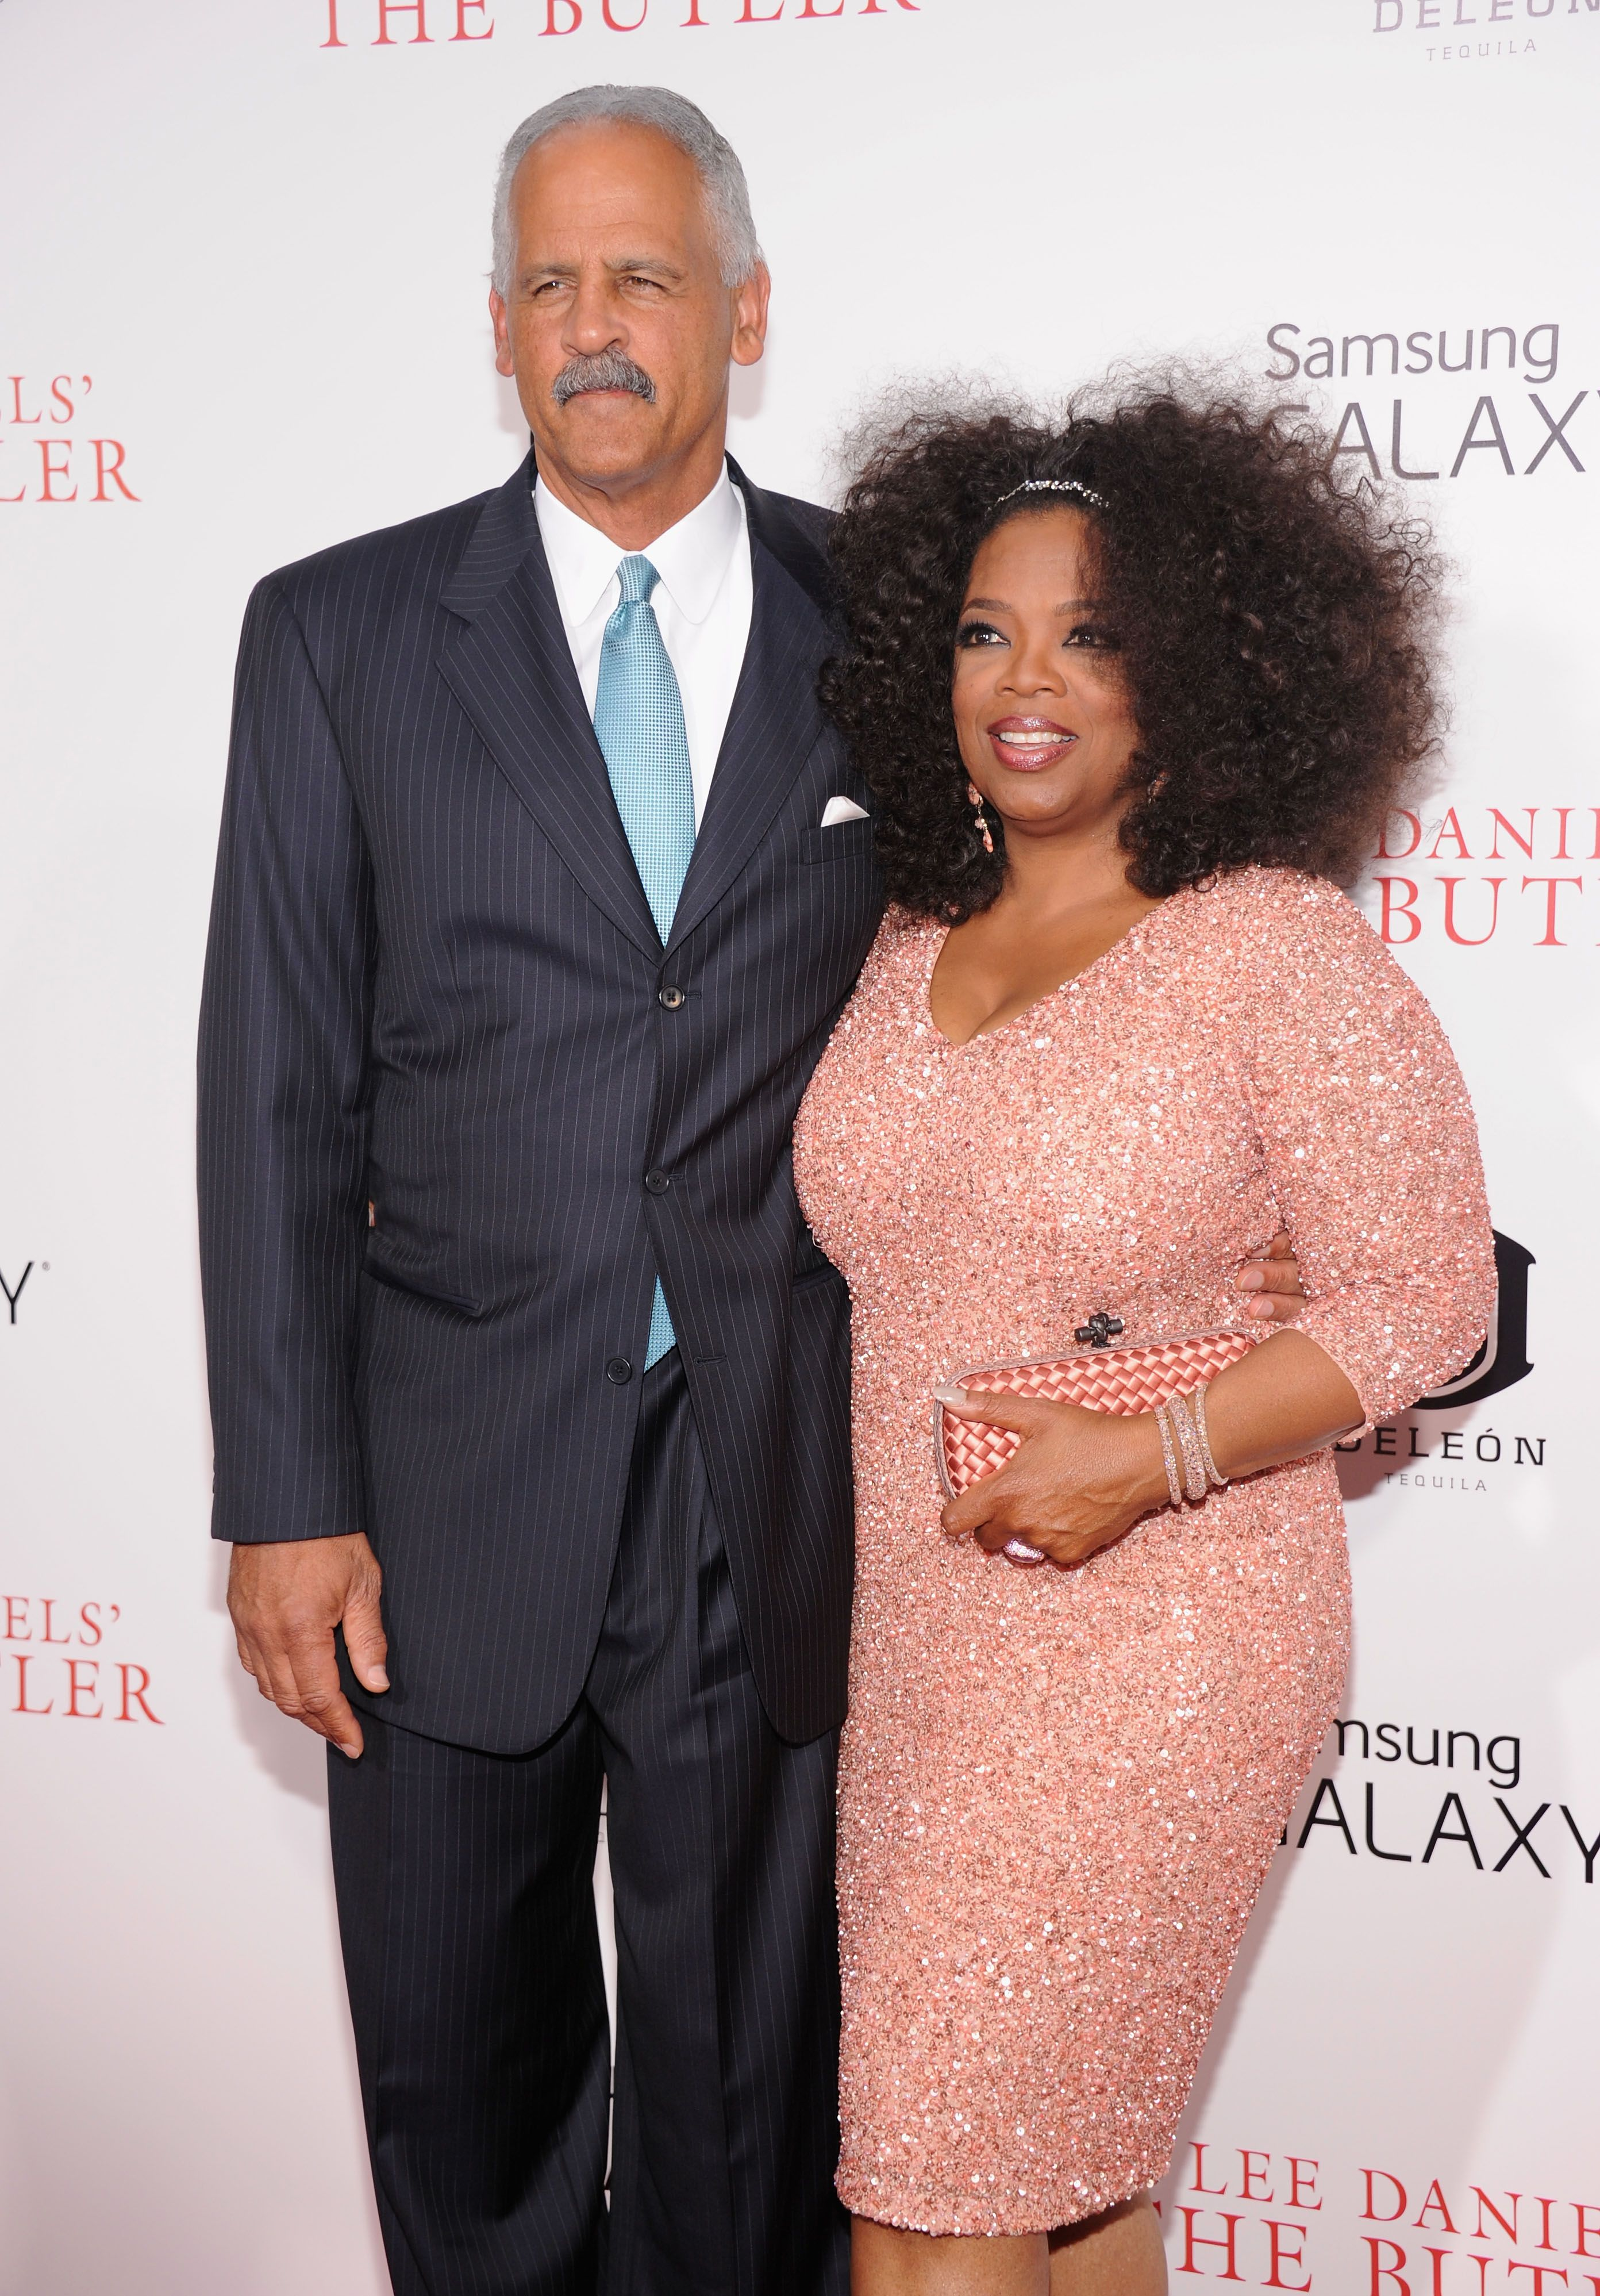 """Oprah Winfrey and Stedman Graham attend Lee Daniels' """"The Butler"""" New York Premiere. 